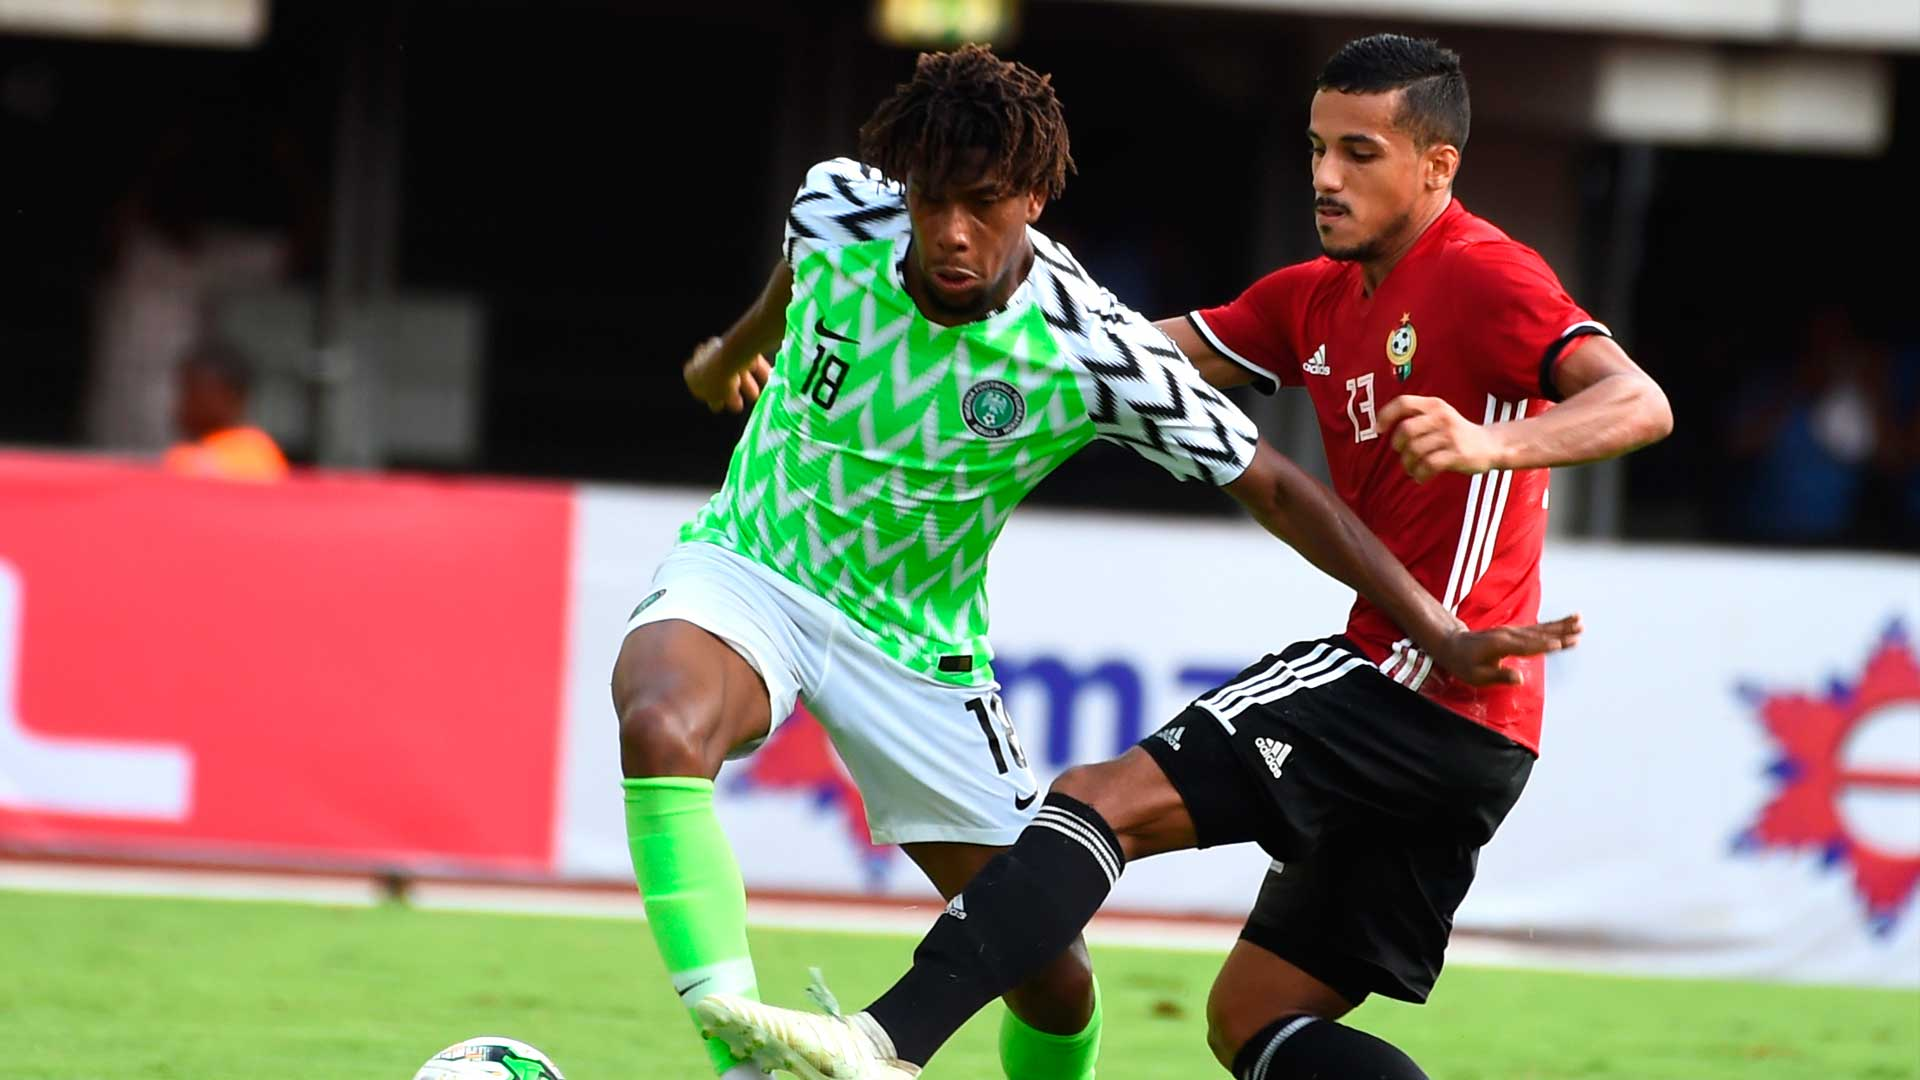 'It was a blessing to play with Mikel and Ighalo' - Everton star Iwobi